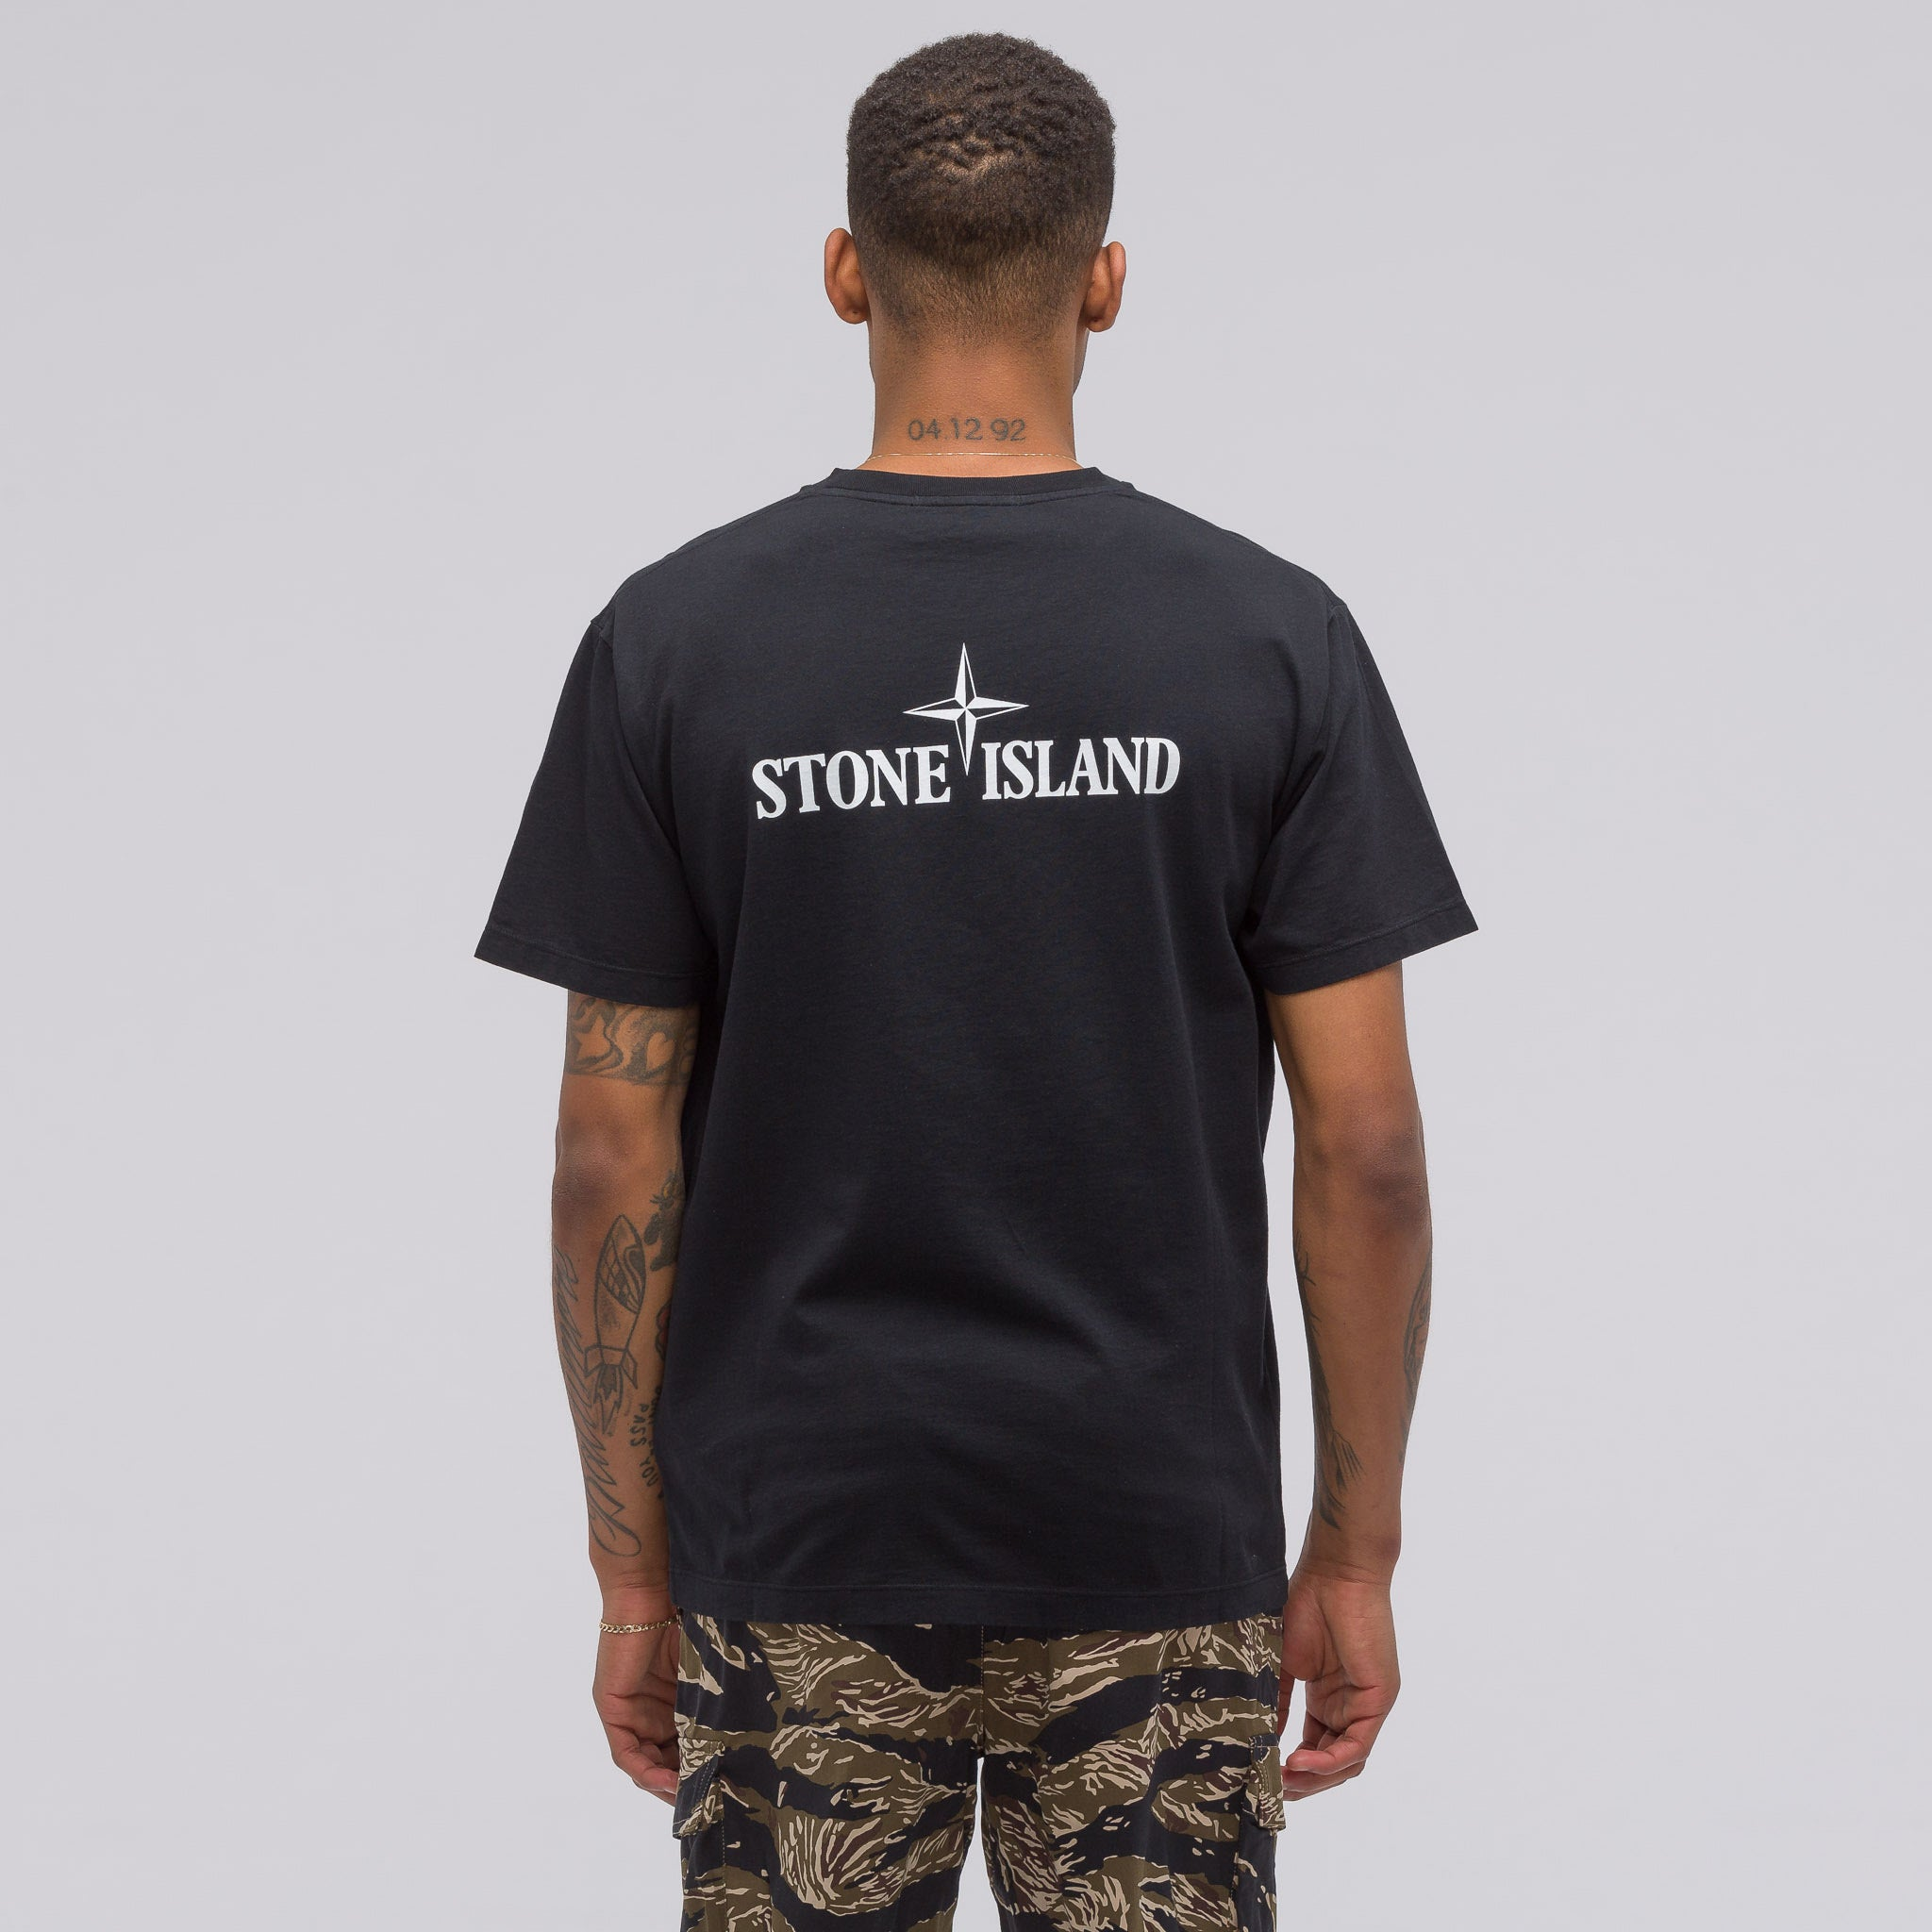 2NS93 T-Shirt in Black